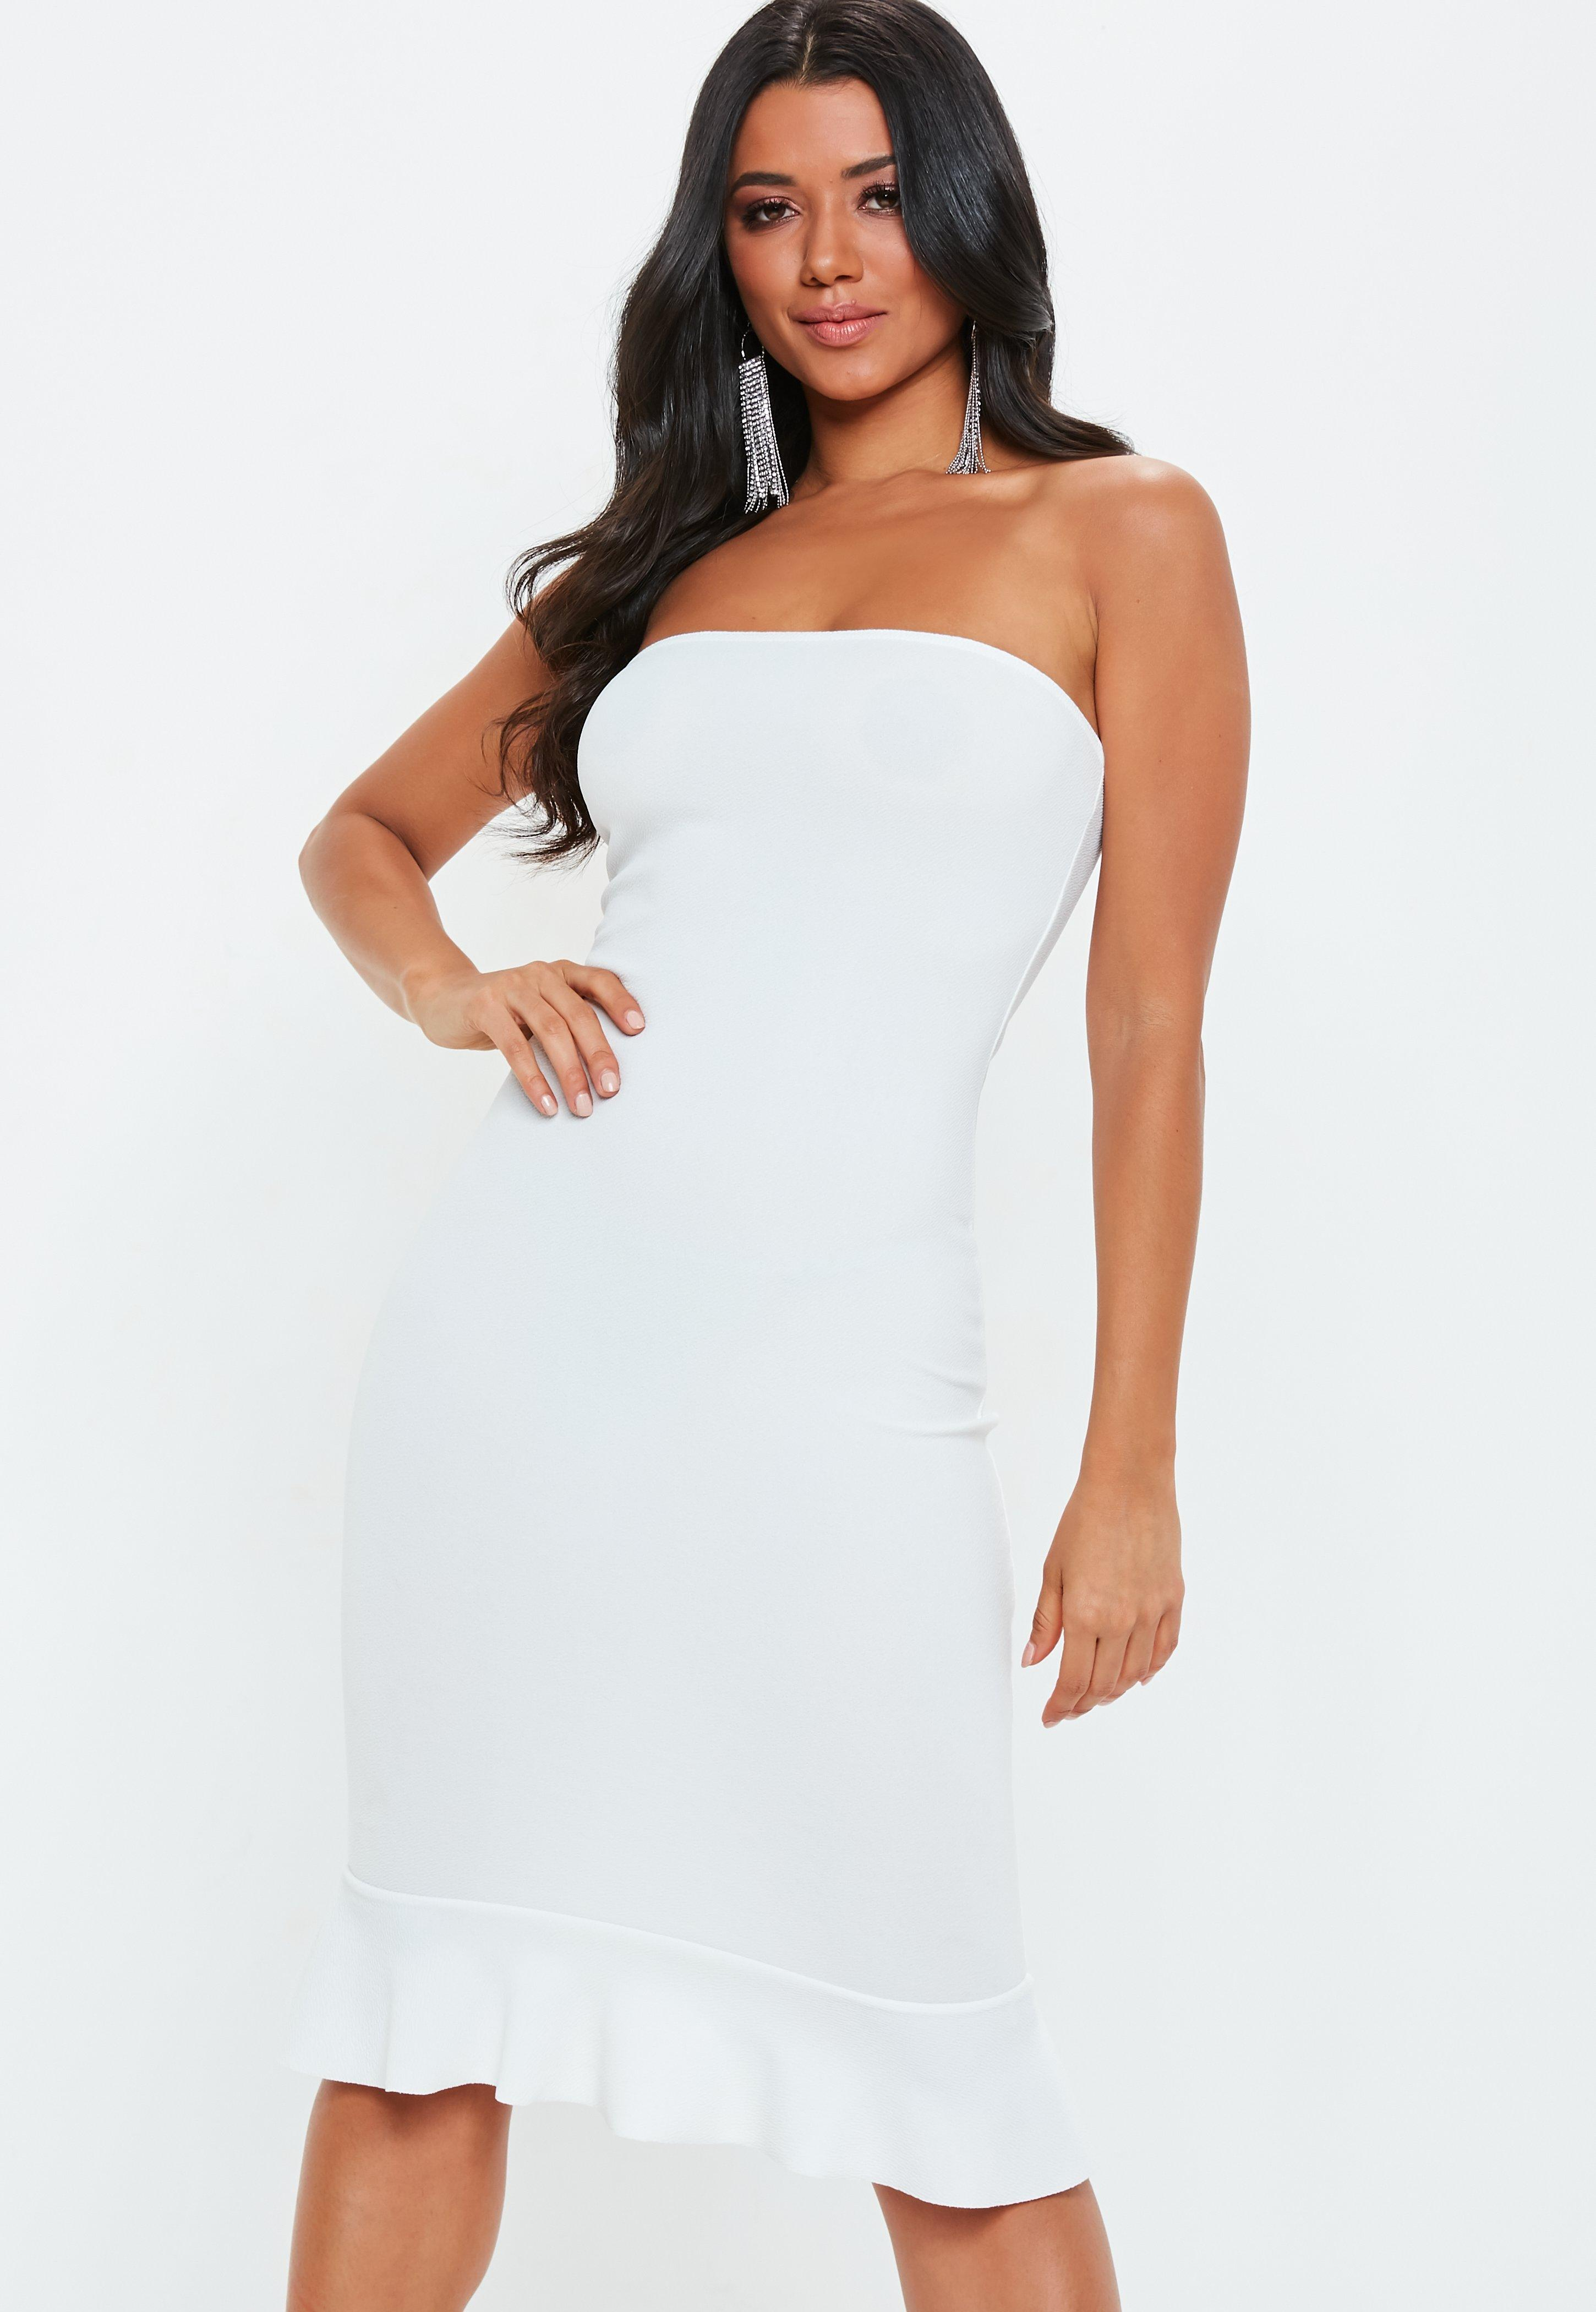 cb7b666cde69d Robe blanche   Achat robe blanche femme - Missguided